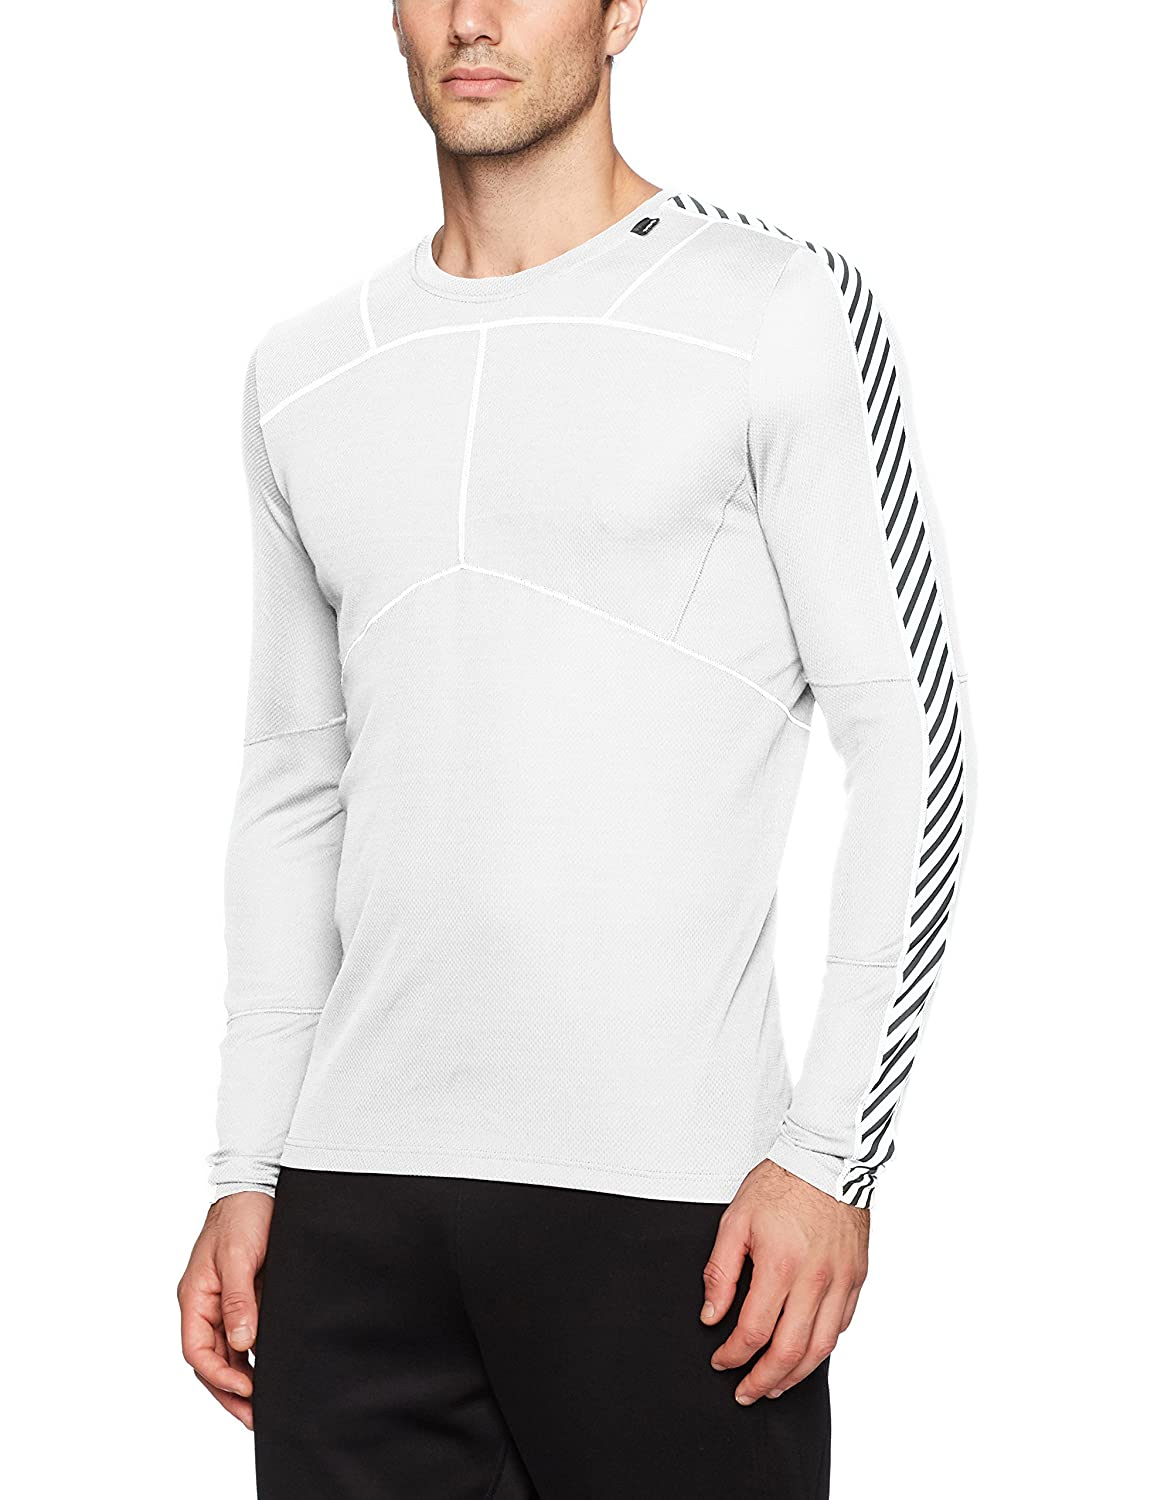 Helly Hansen LIFA Crew Base Layer Top B06XH8Q22Y-p